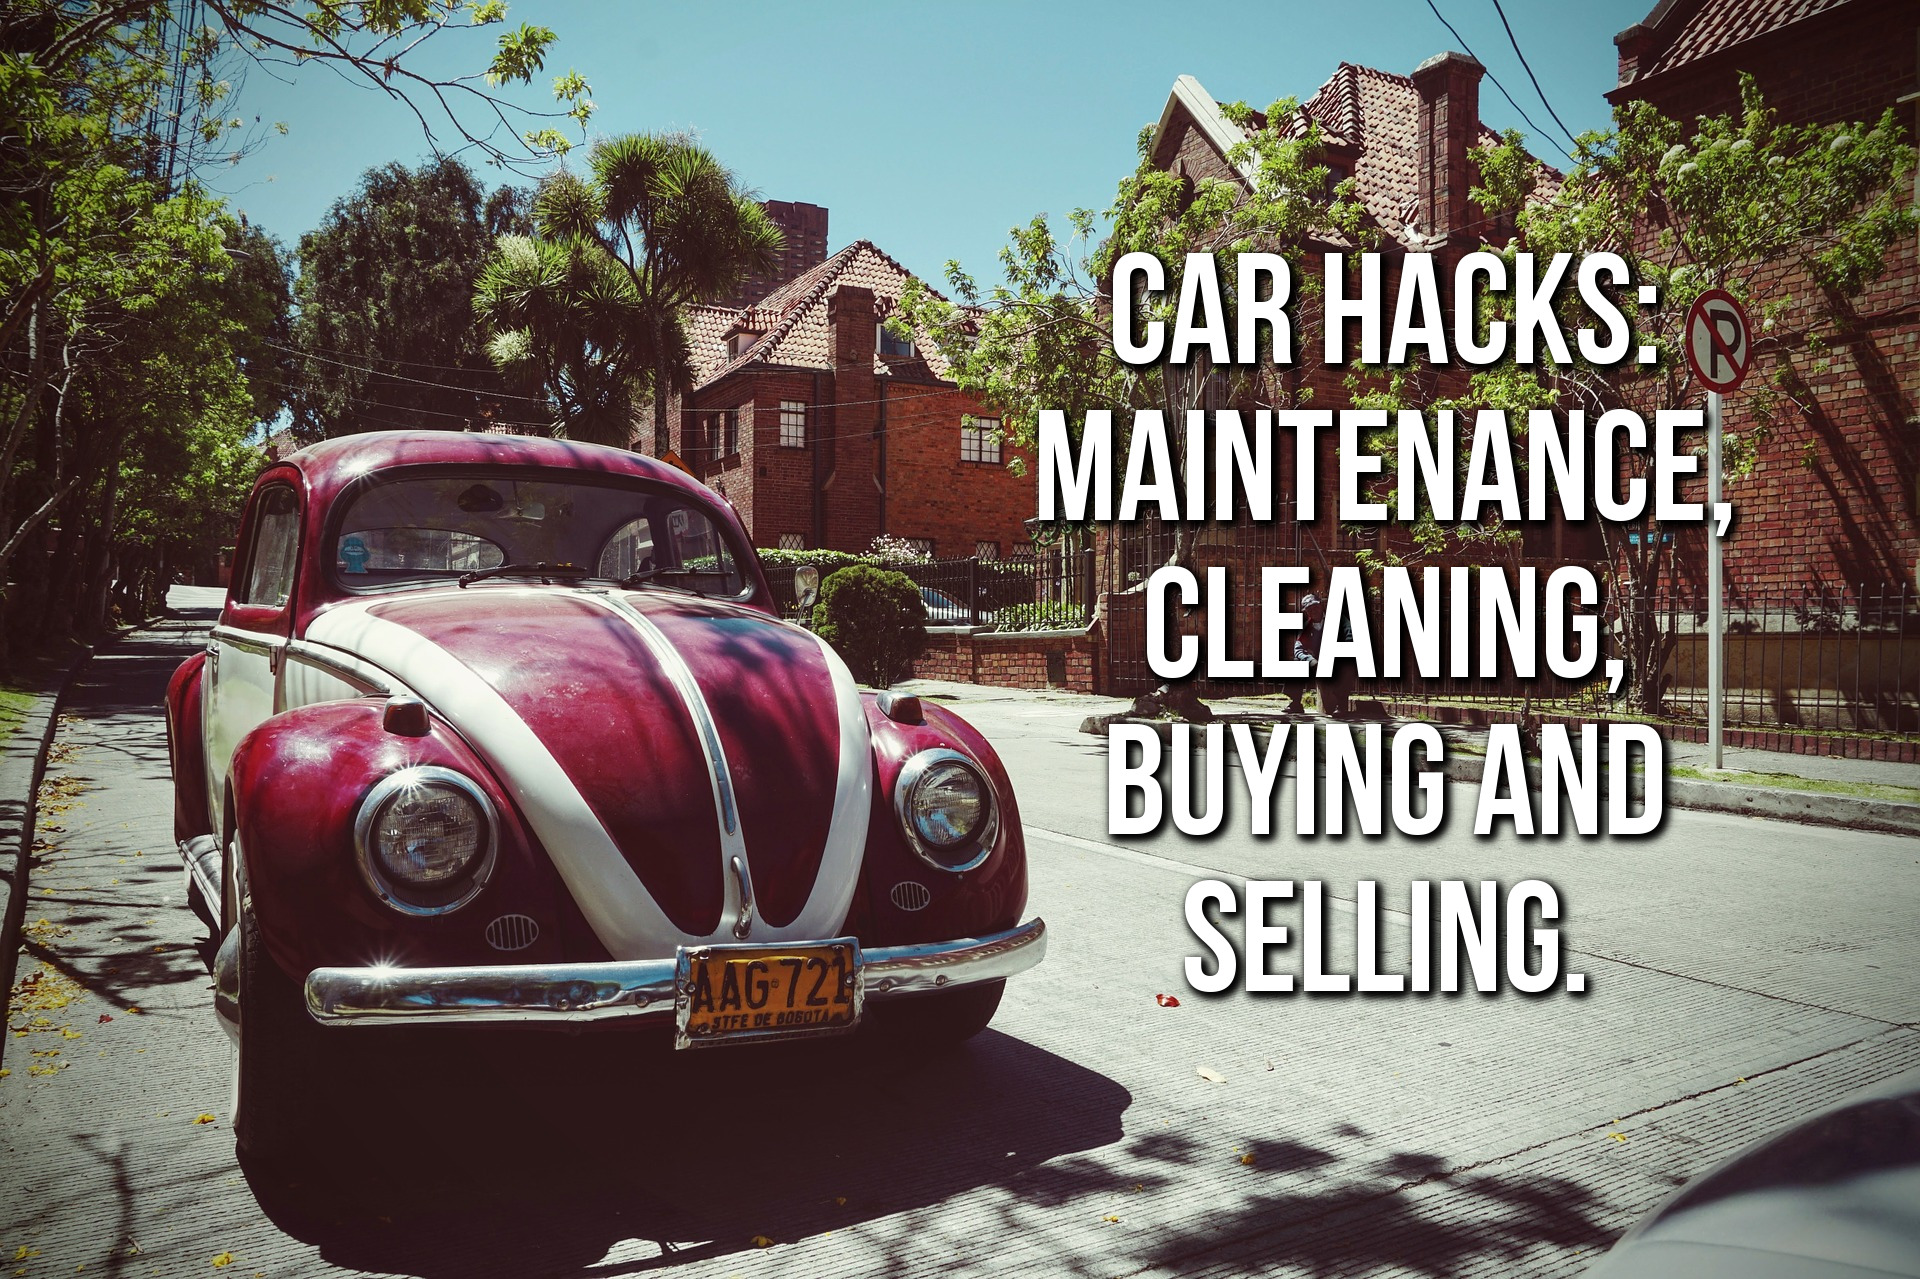 Cars Hacks - Car Maintenance, Cleaning, Buying And More - Life Hacks